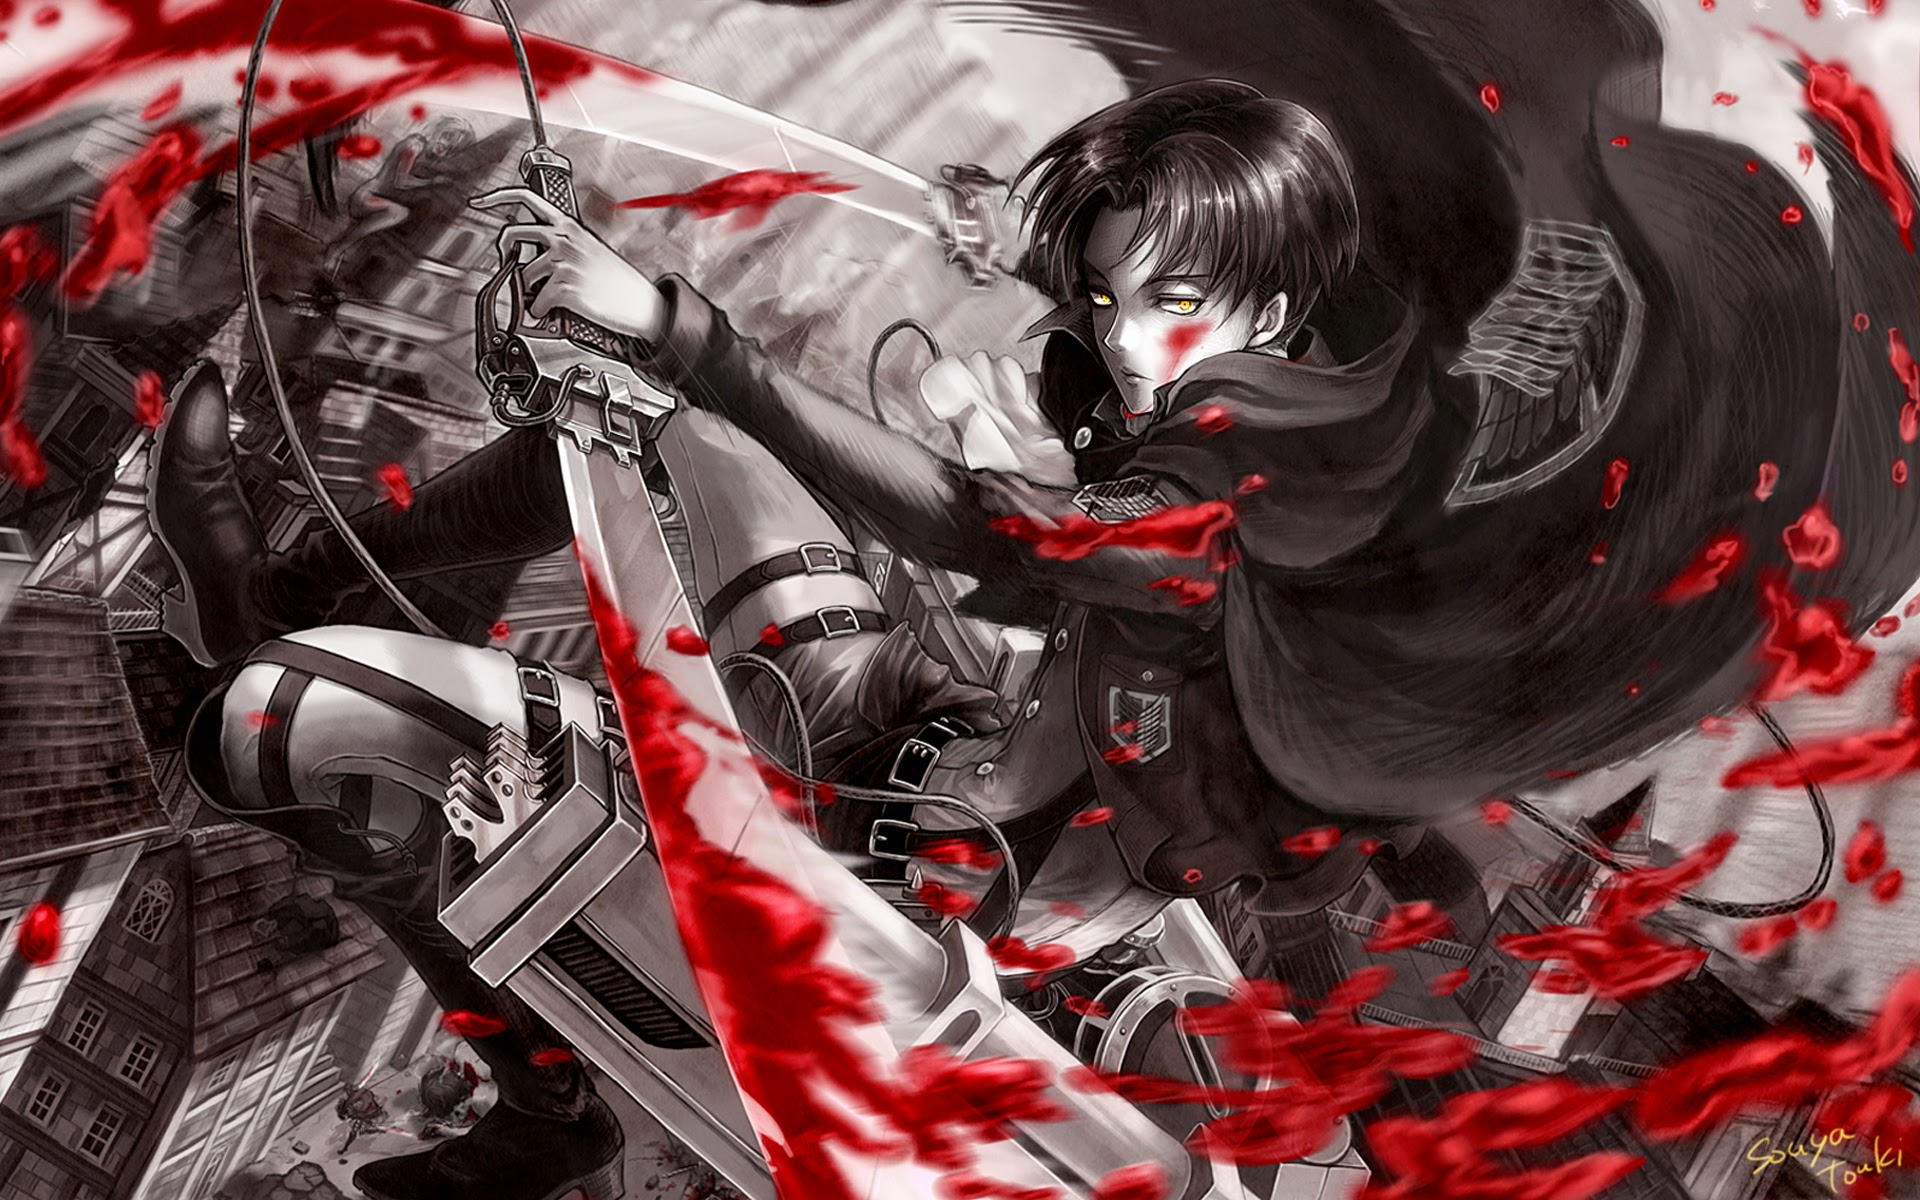 Levi attack on titan shingeki no kyojin anime hd wallpaper 1440x900 6g - Anime Picture Image Attack On Titan Shingeki No Kyojin Hd Wallpaper 0 Html Code Levi Attack On Titan Image 6g Wallpaper Hd